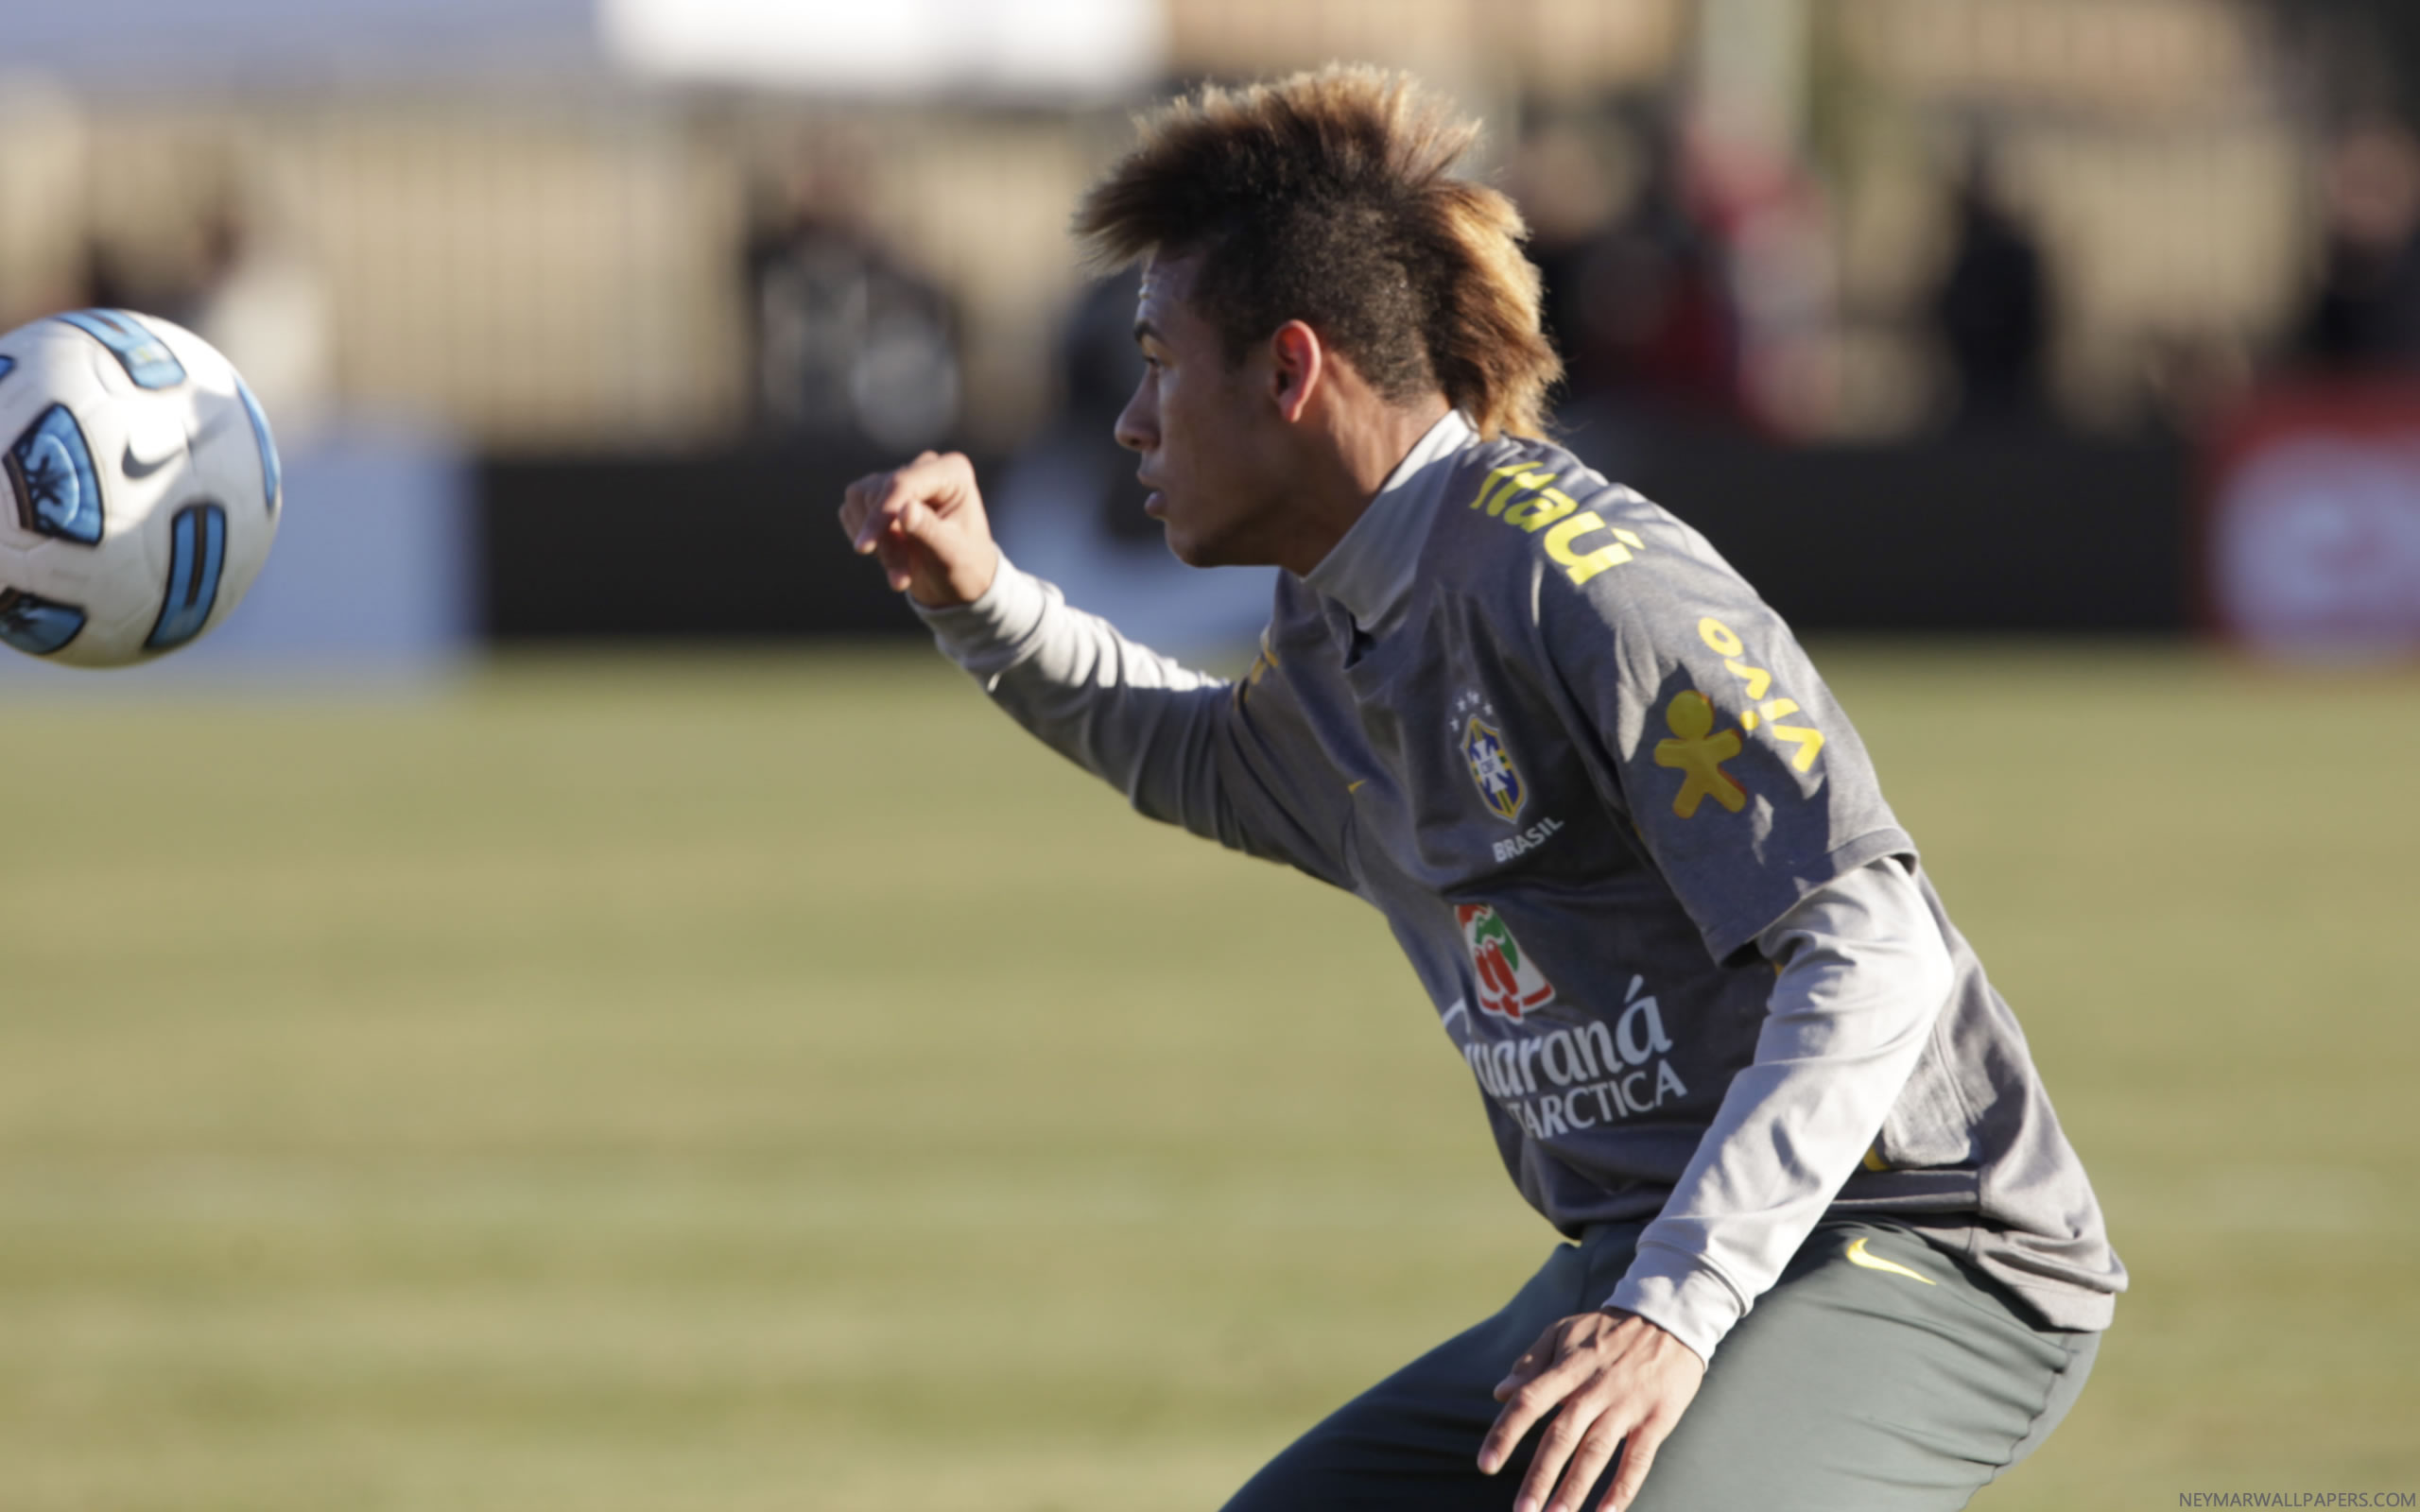 Neymar in Santos training gear wallpaper